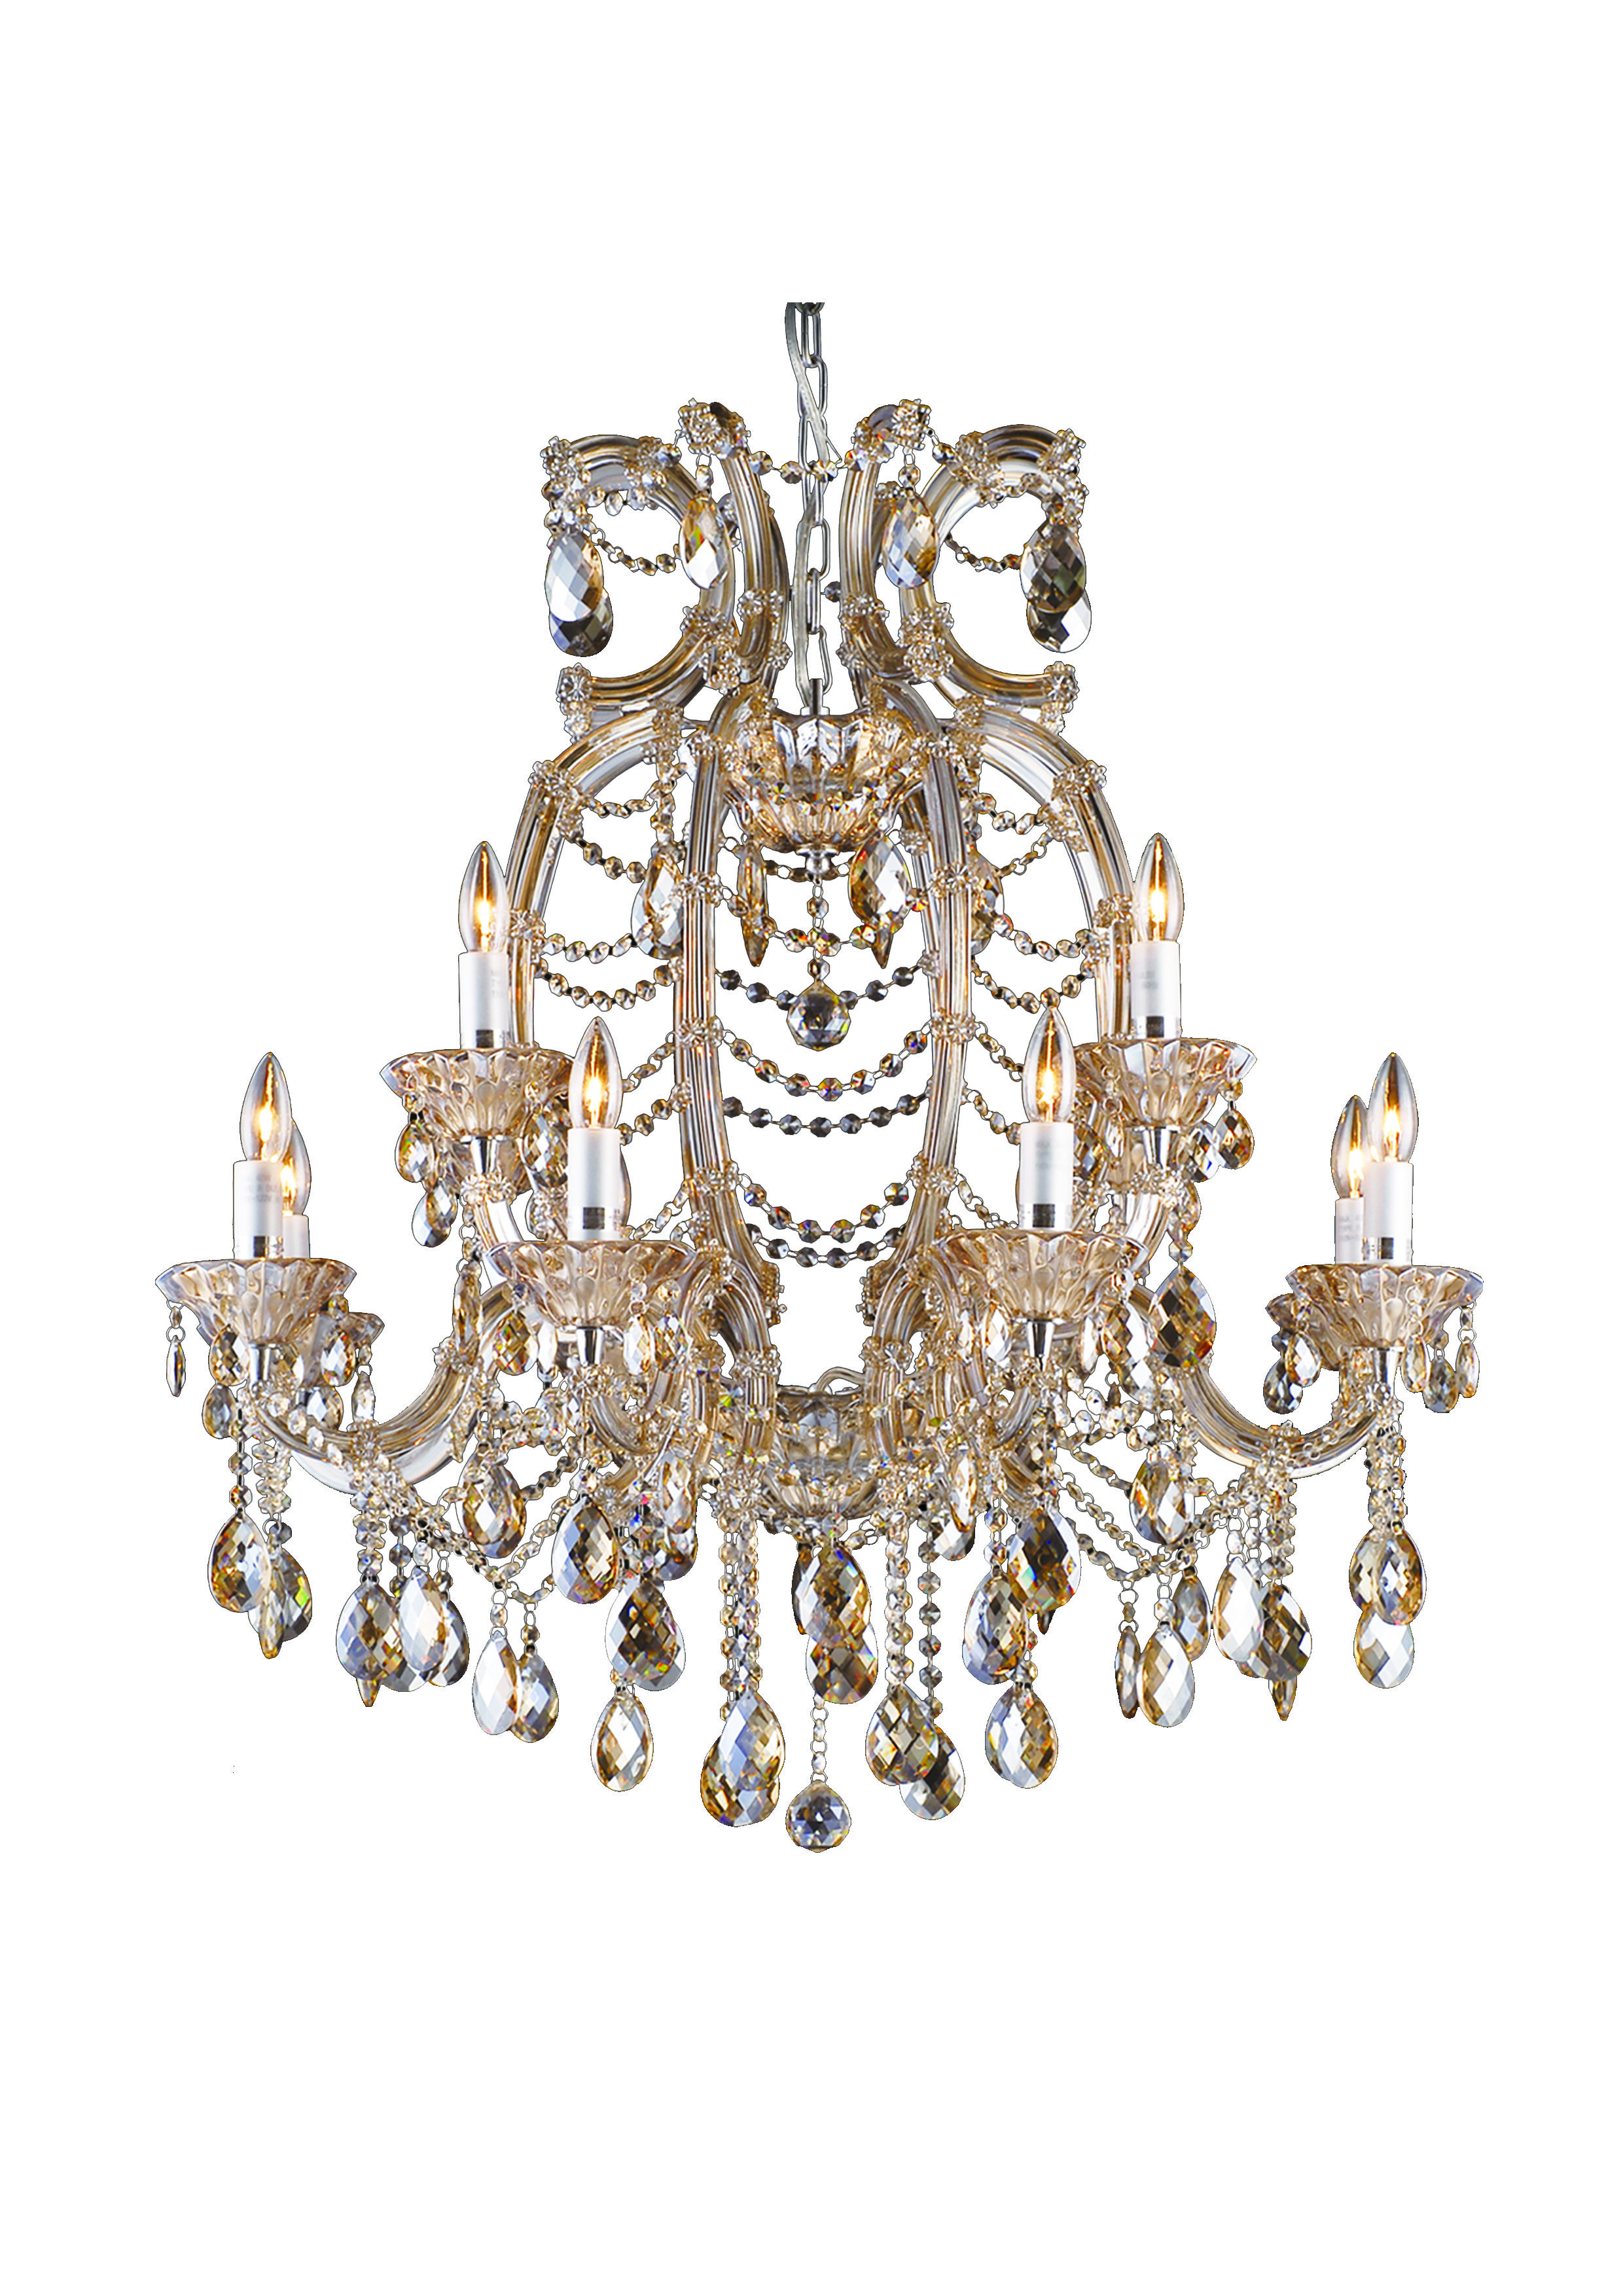 This Breathtaking 12 Light Champagne Colored Crystal Chandelier Will Definitely Make Any House Look A Candle Styling Geometric Chandelier Crystal Chandelier